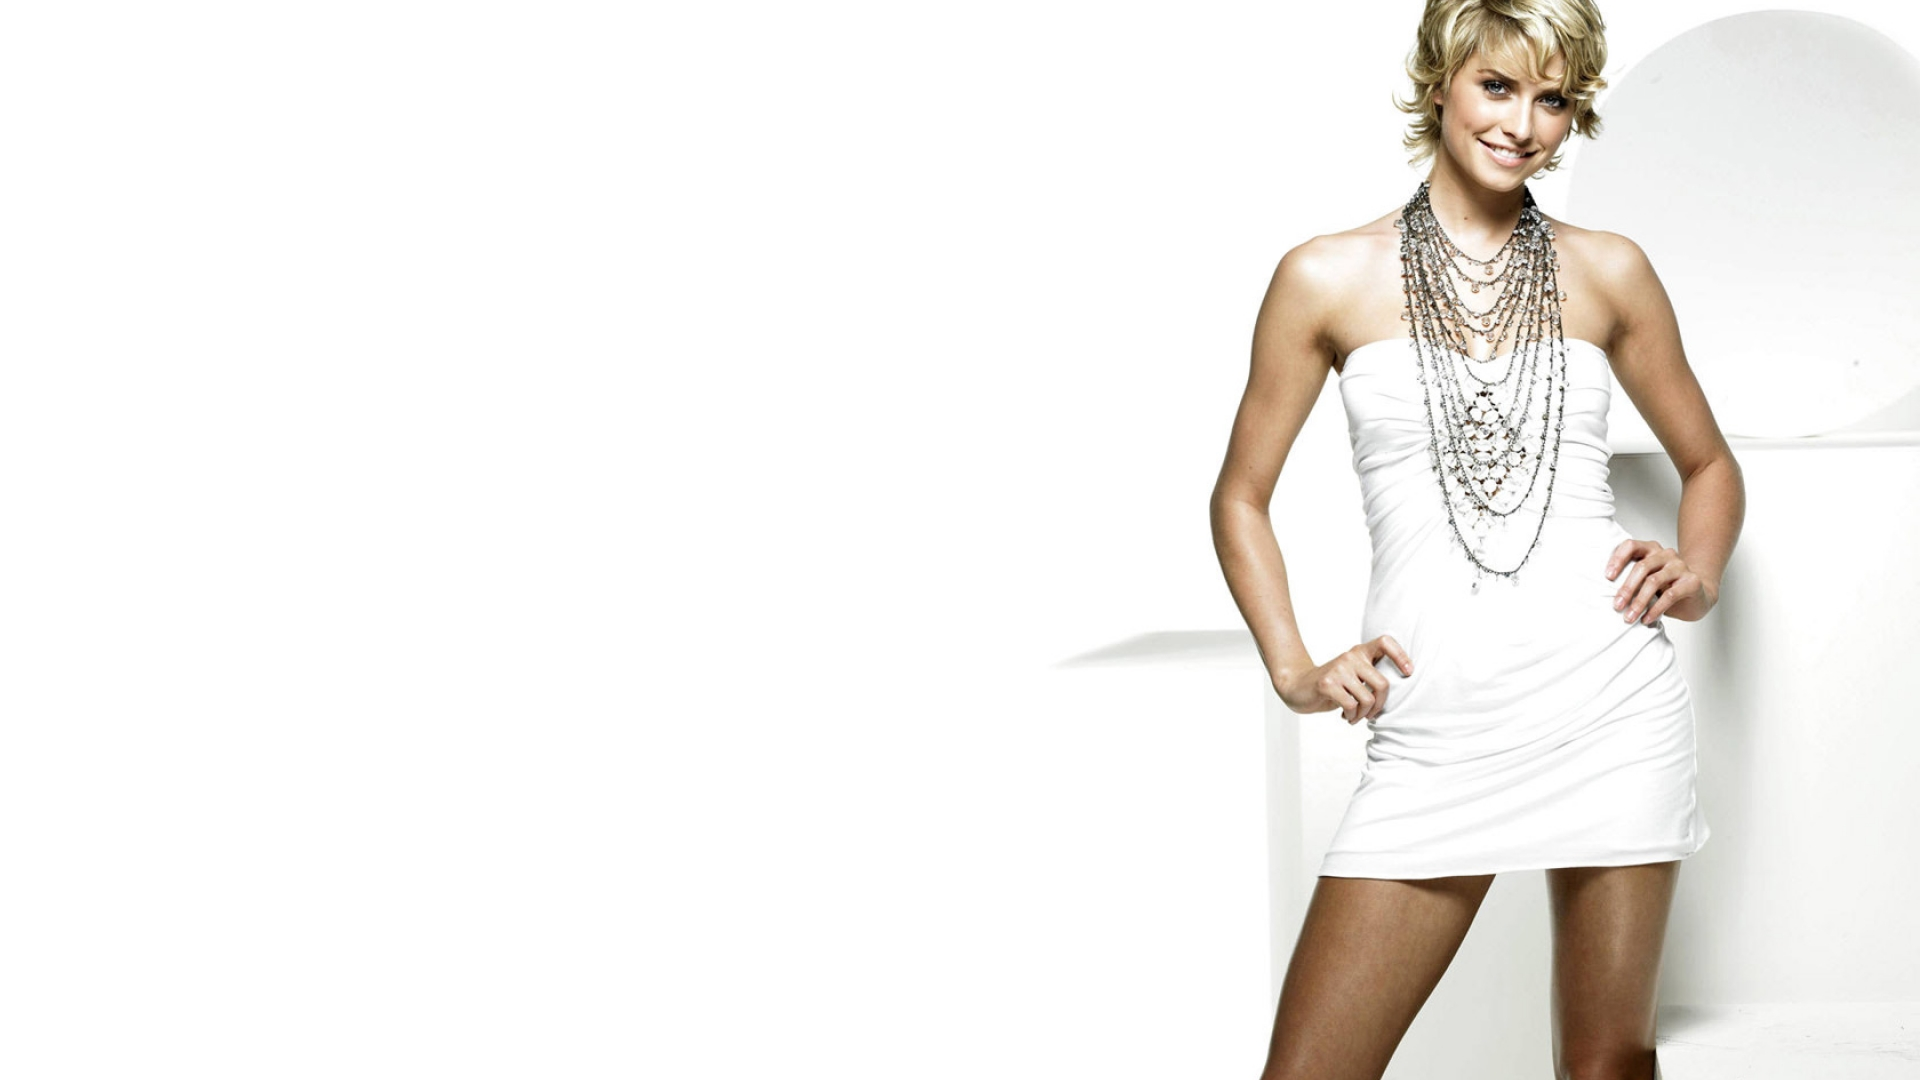 Lena Gercke wallpaper